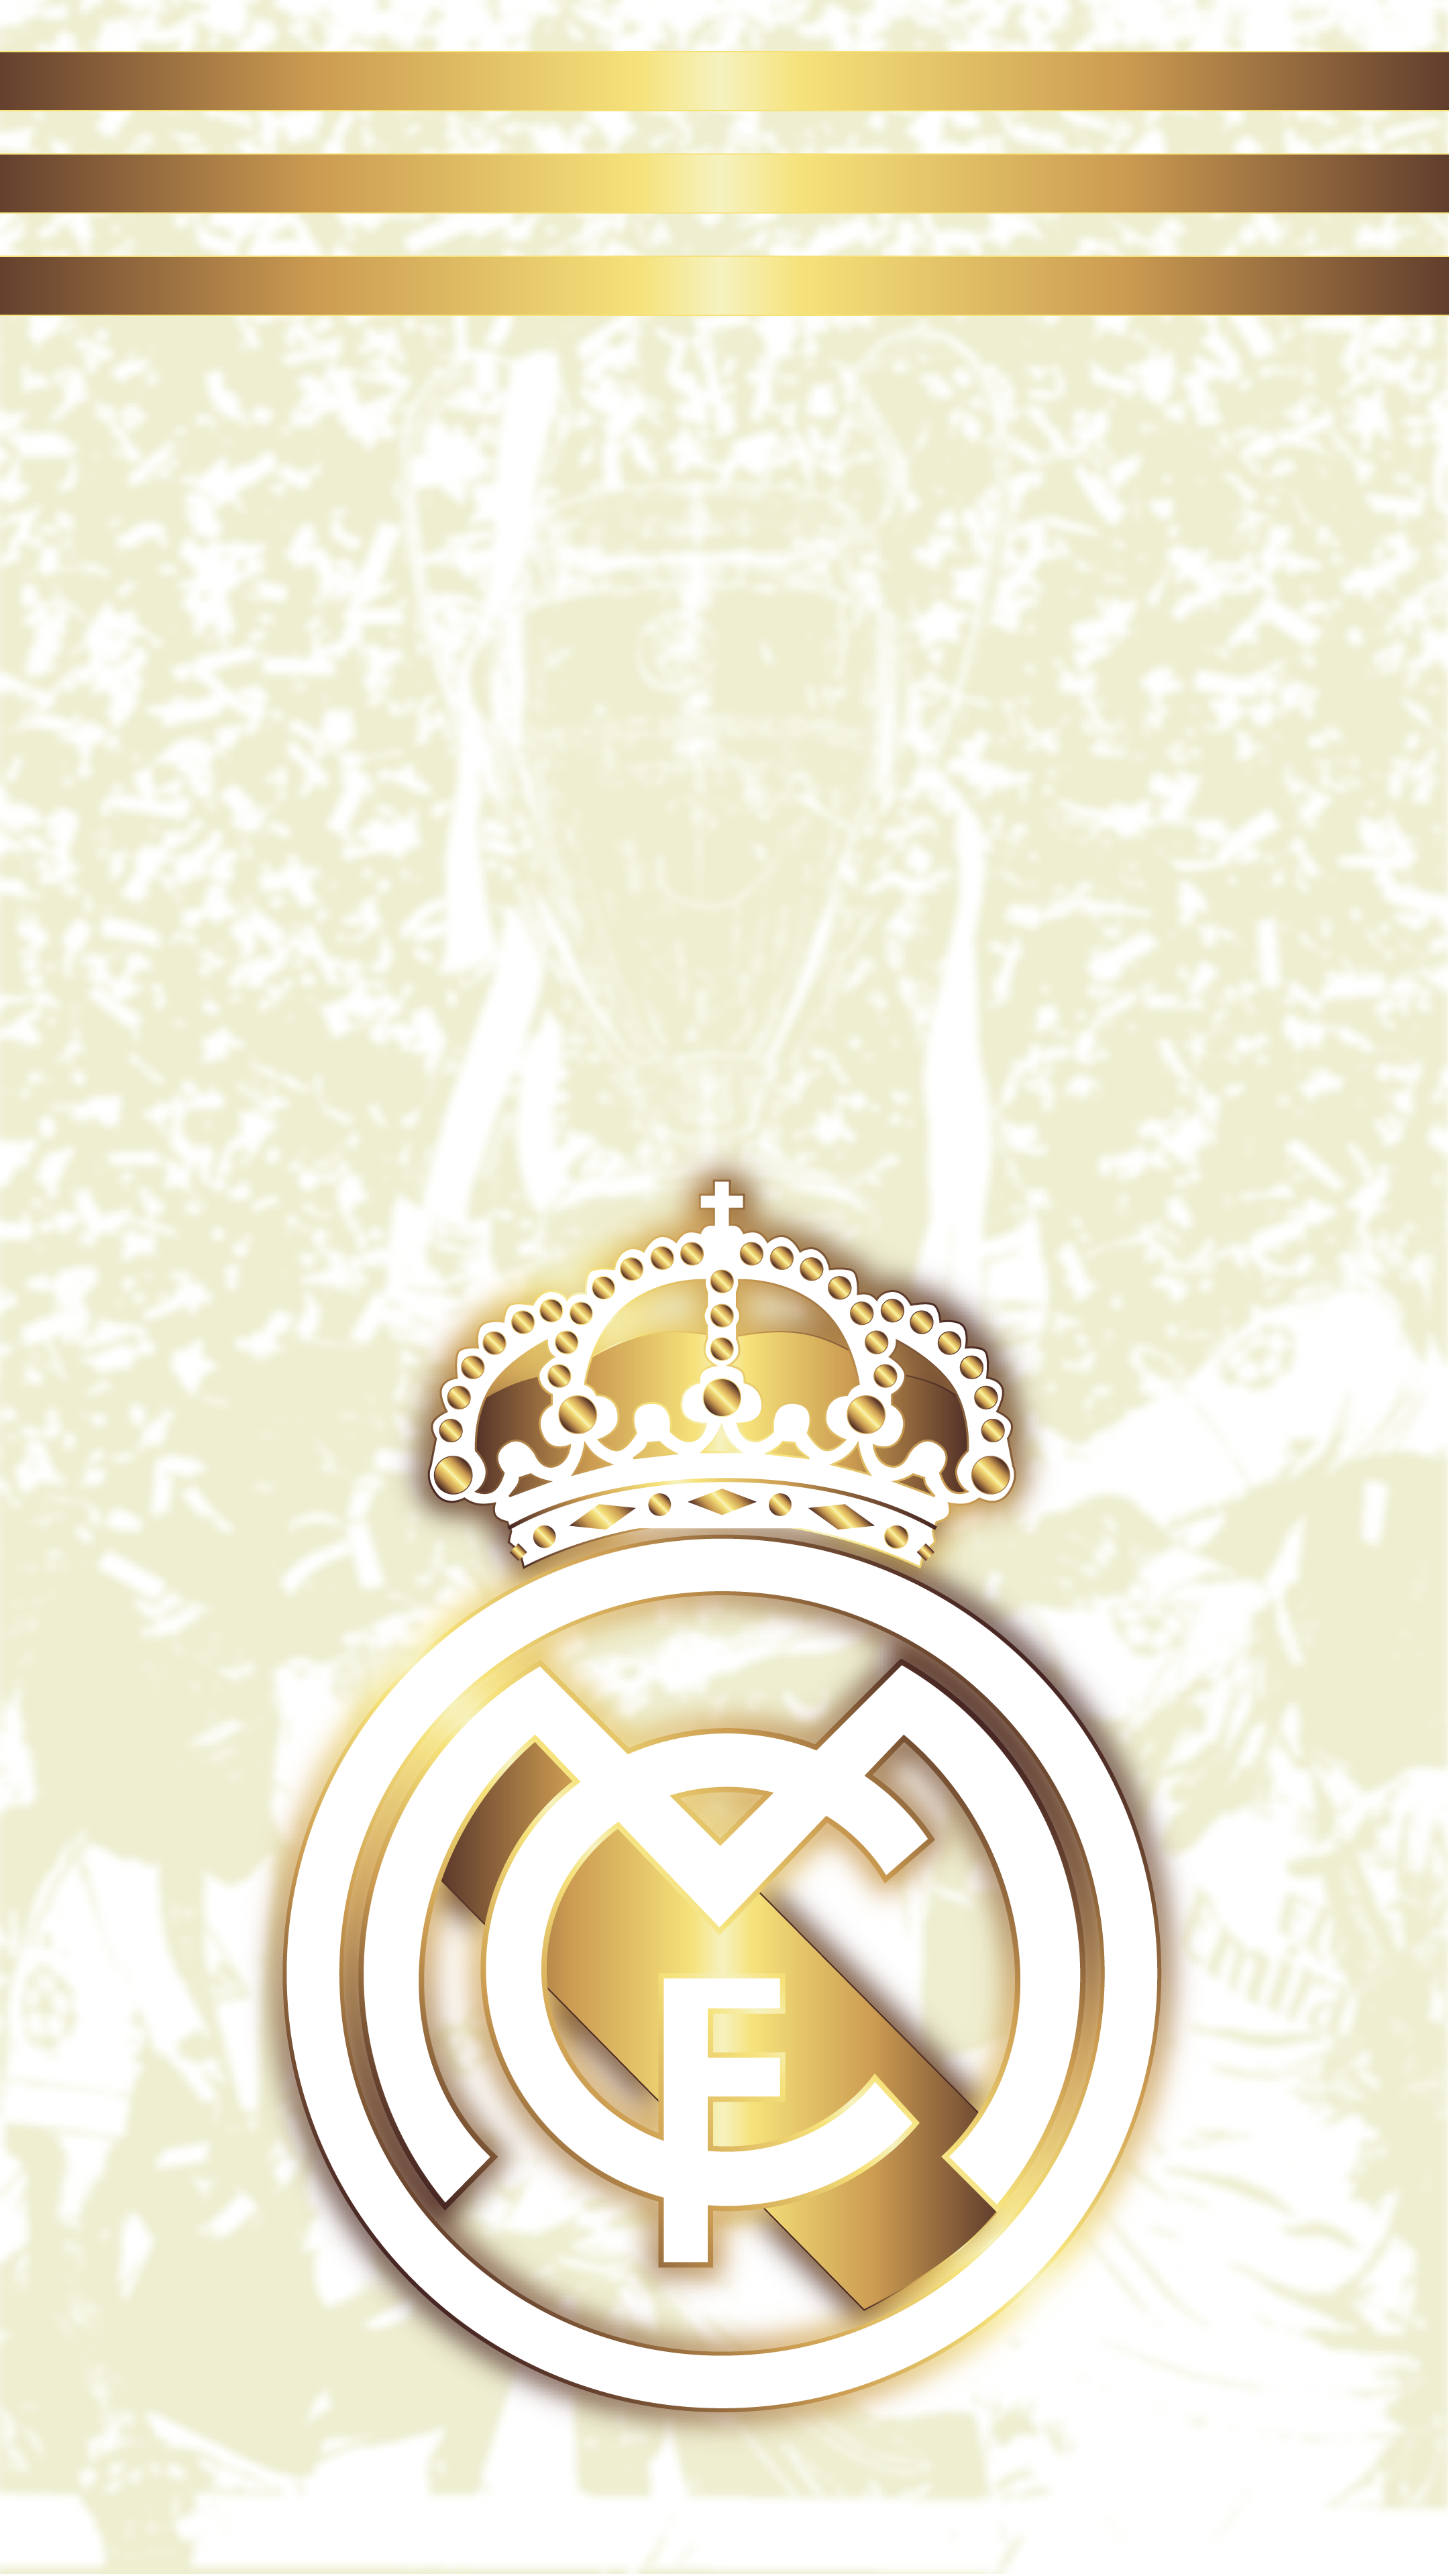 Real Madrid Wallpaper Hd 2019 Hd Football In 2020 Madrid Wallpaper Real Madrid Wallpapers Real Madrid Logo Wallpapers